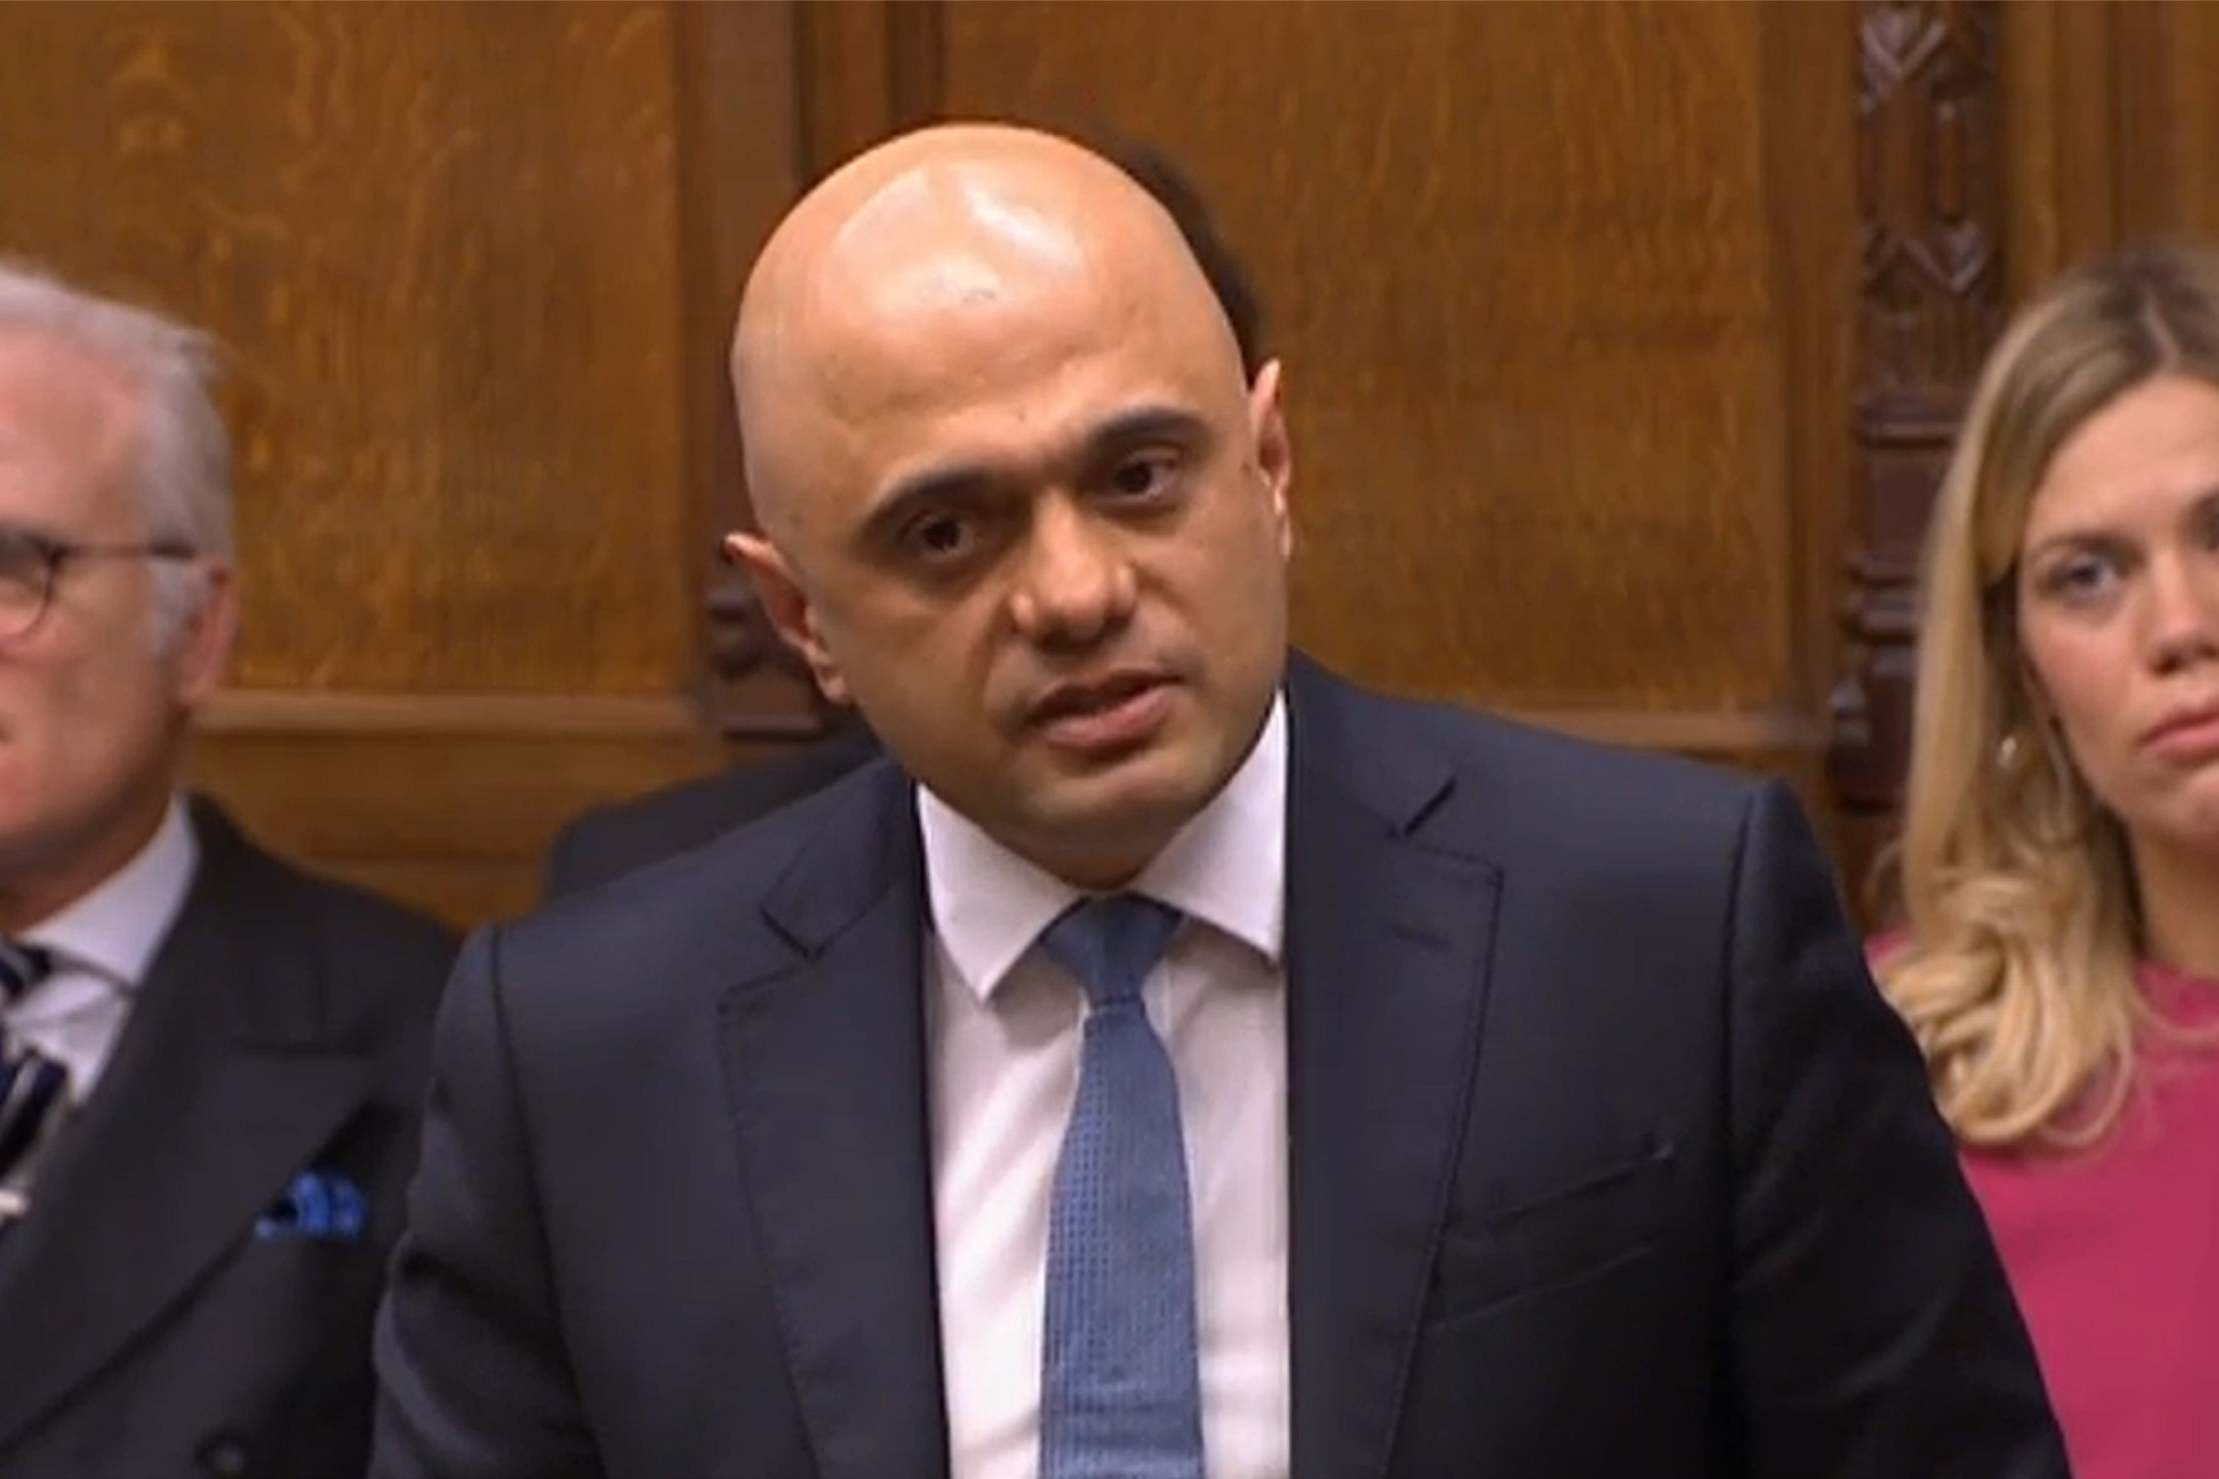 Sajid Javid warns Boris Johnson not to go on a spending splurge in next budget after shock resignation